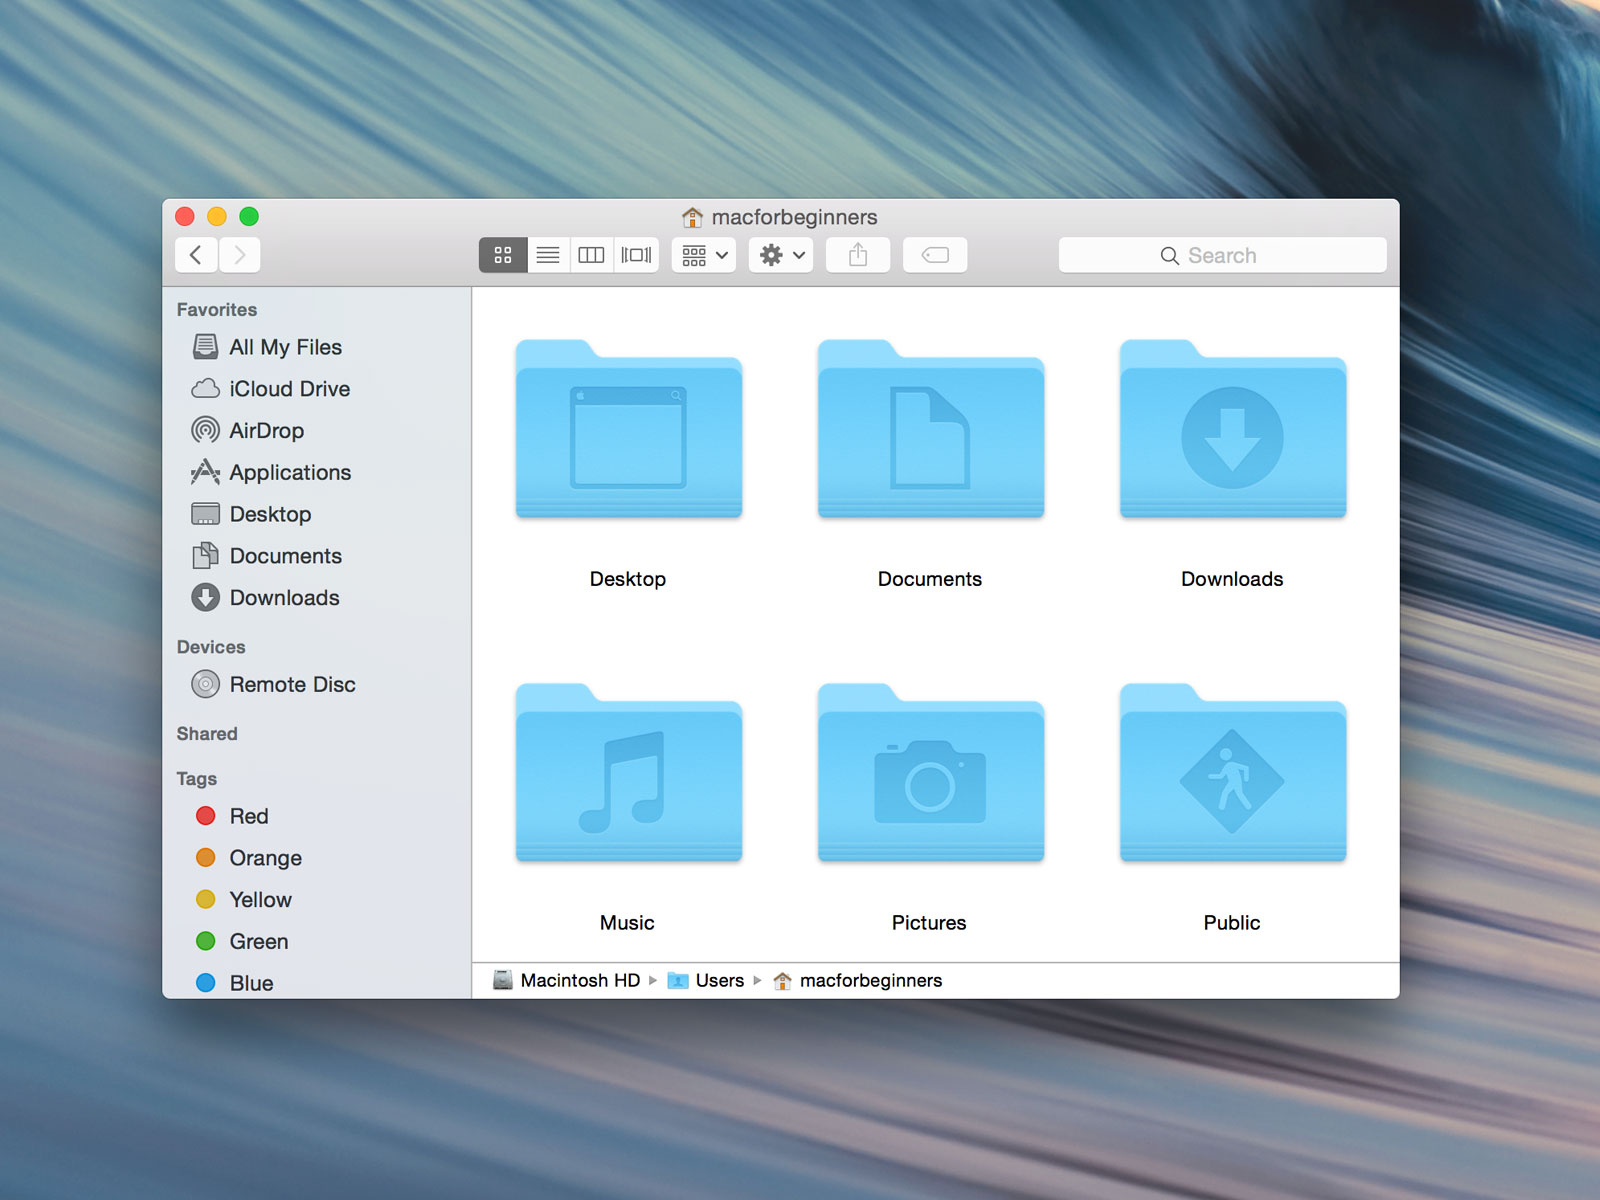 Folder Organization Macforbeginners